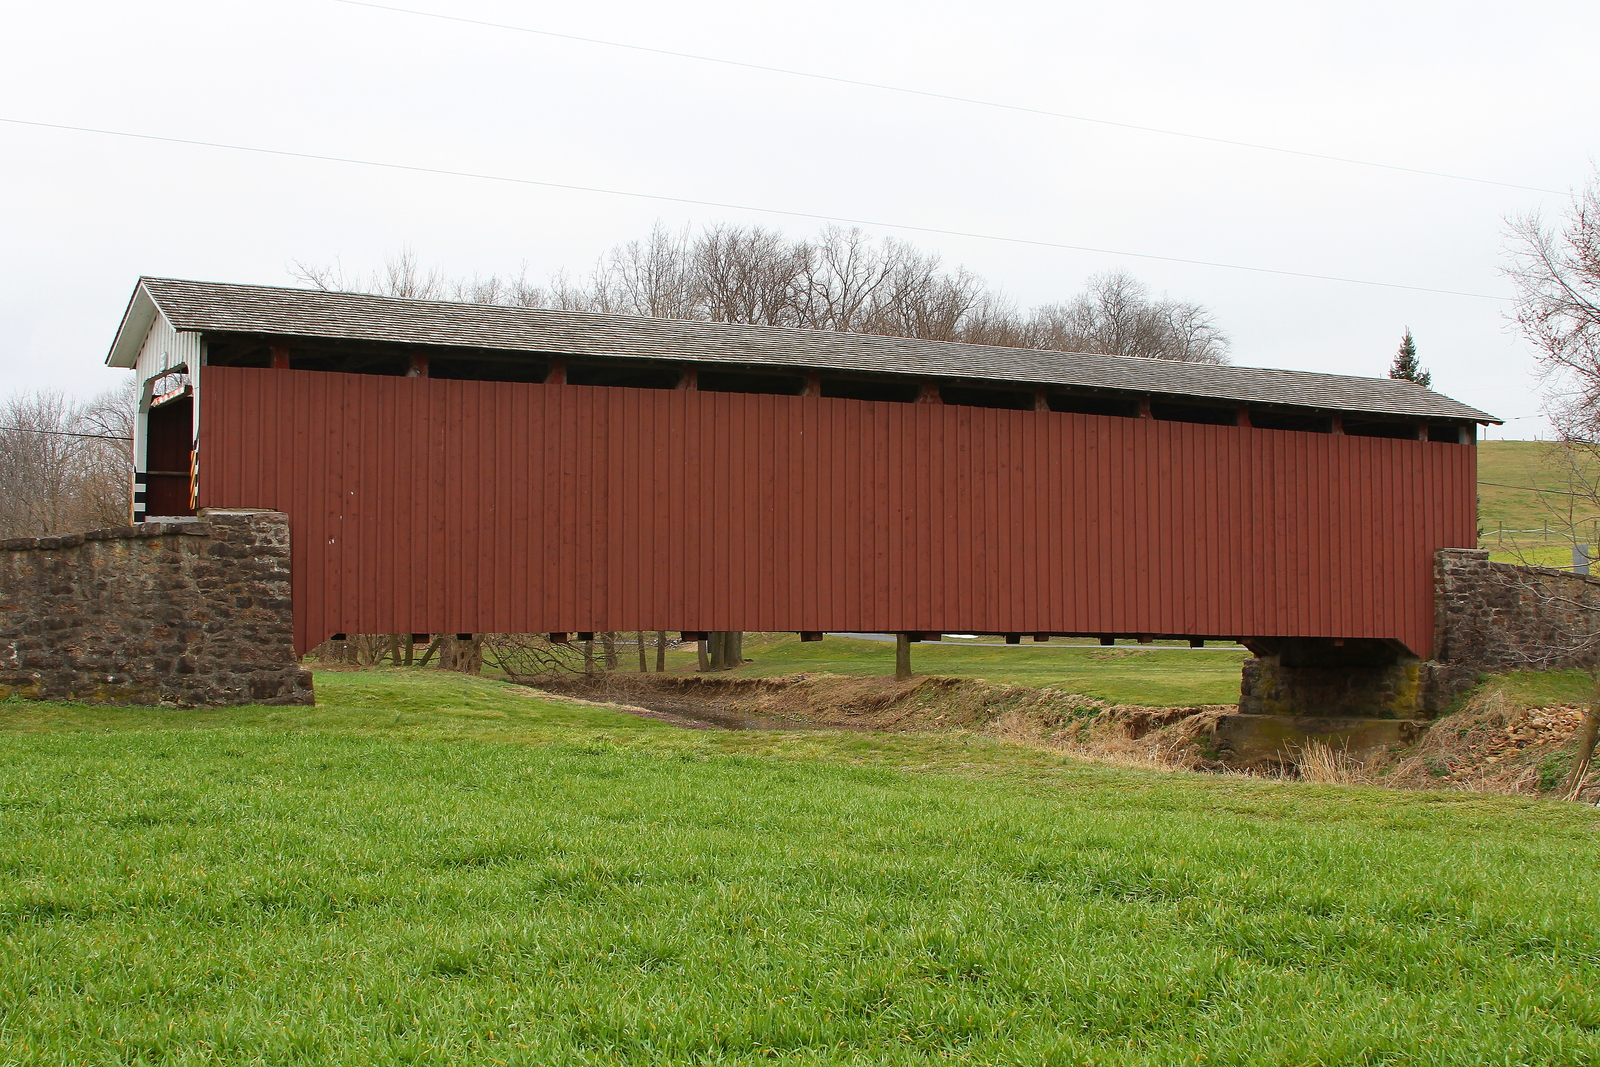 Weaver's Mill Covered Bridge 13 x 19 Unmatted Photograph